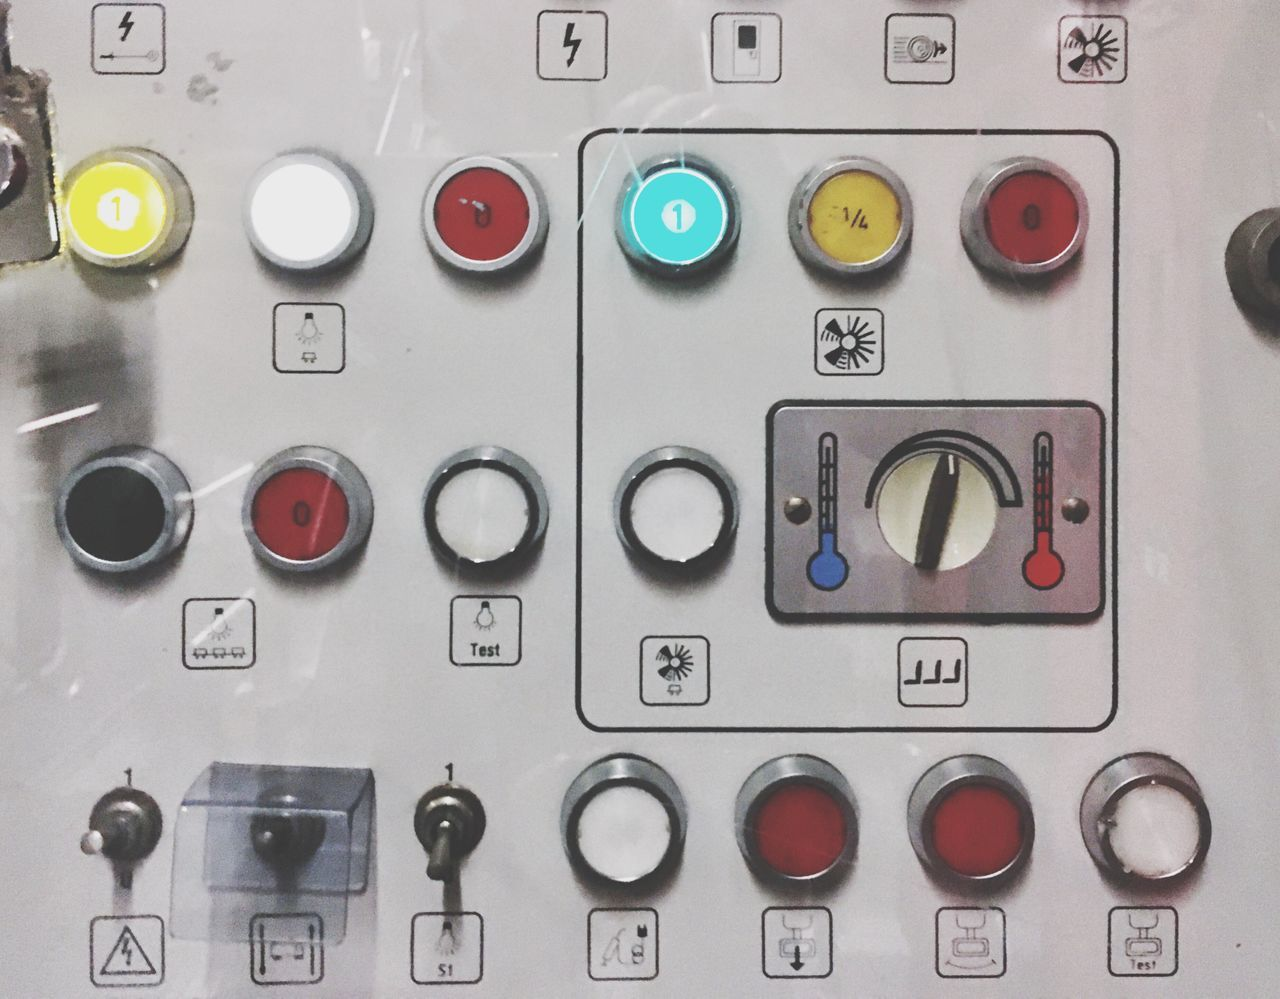 Control Panel Button Buttons Train Switch Tappet Switch Flip Switch Tumbler Switch Control Controller Light Panel Temperature Control System Technology Tech Pictography Pictogram Pictograph Power Heat Air Condition Cooling  Power Control The Color Of Technology